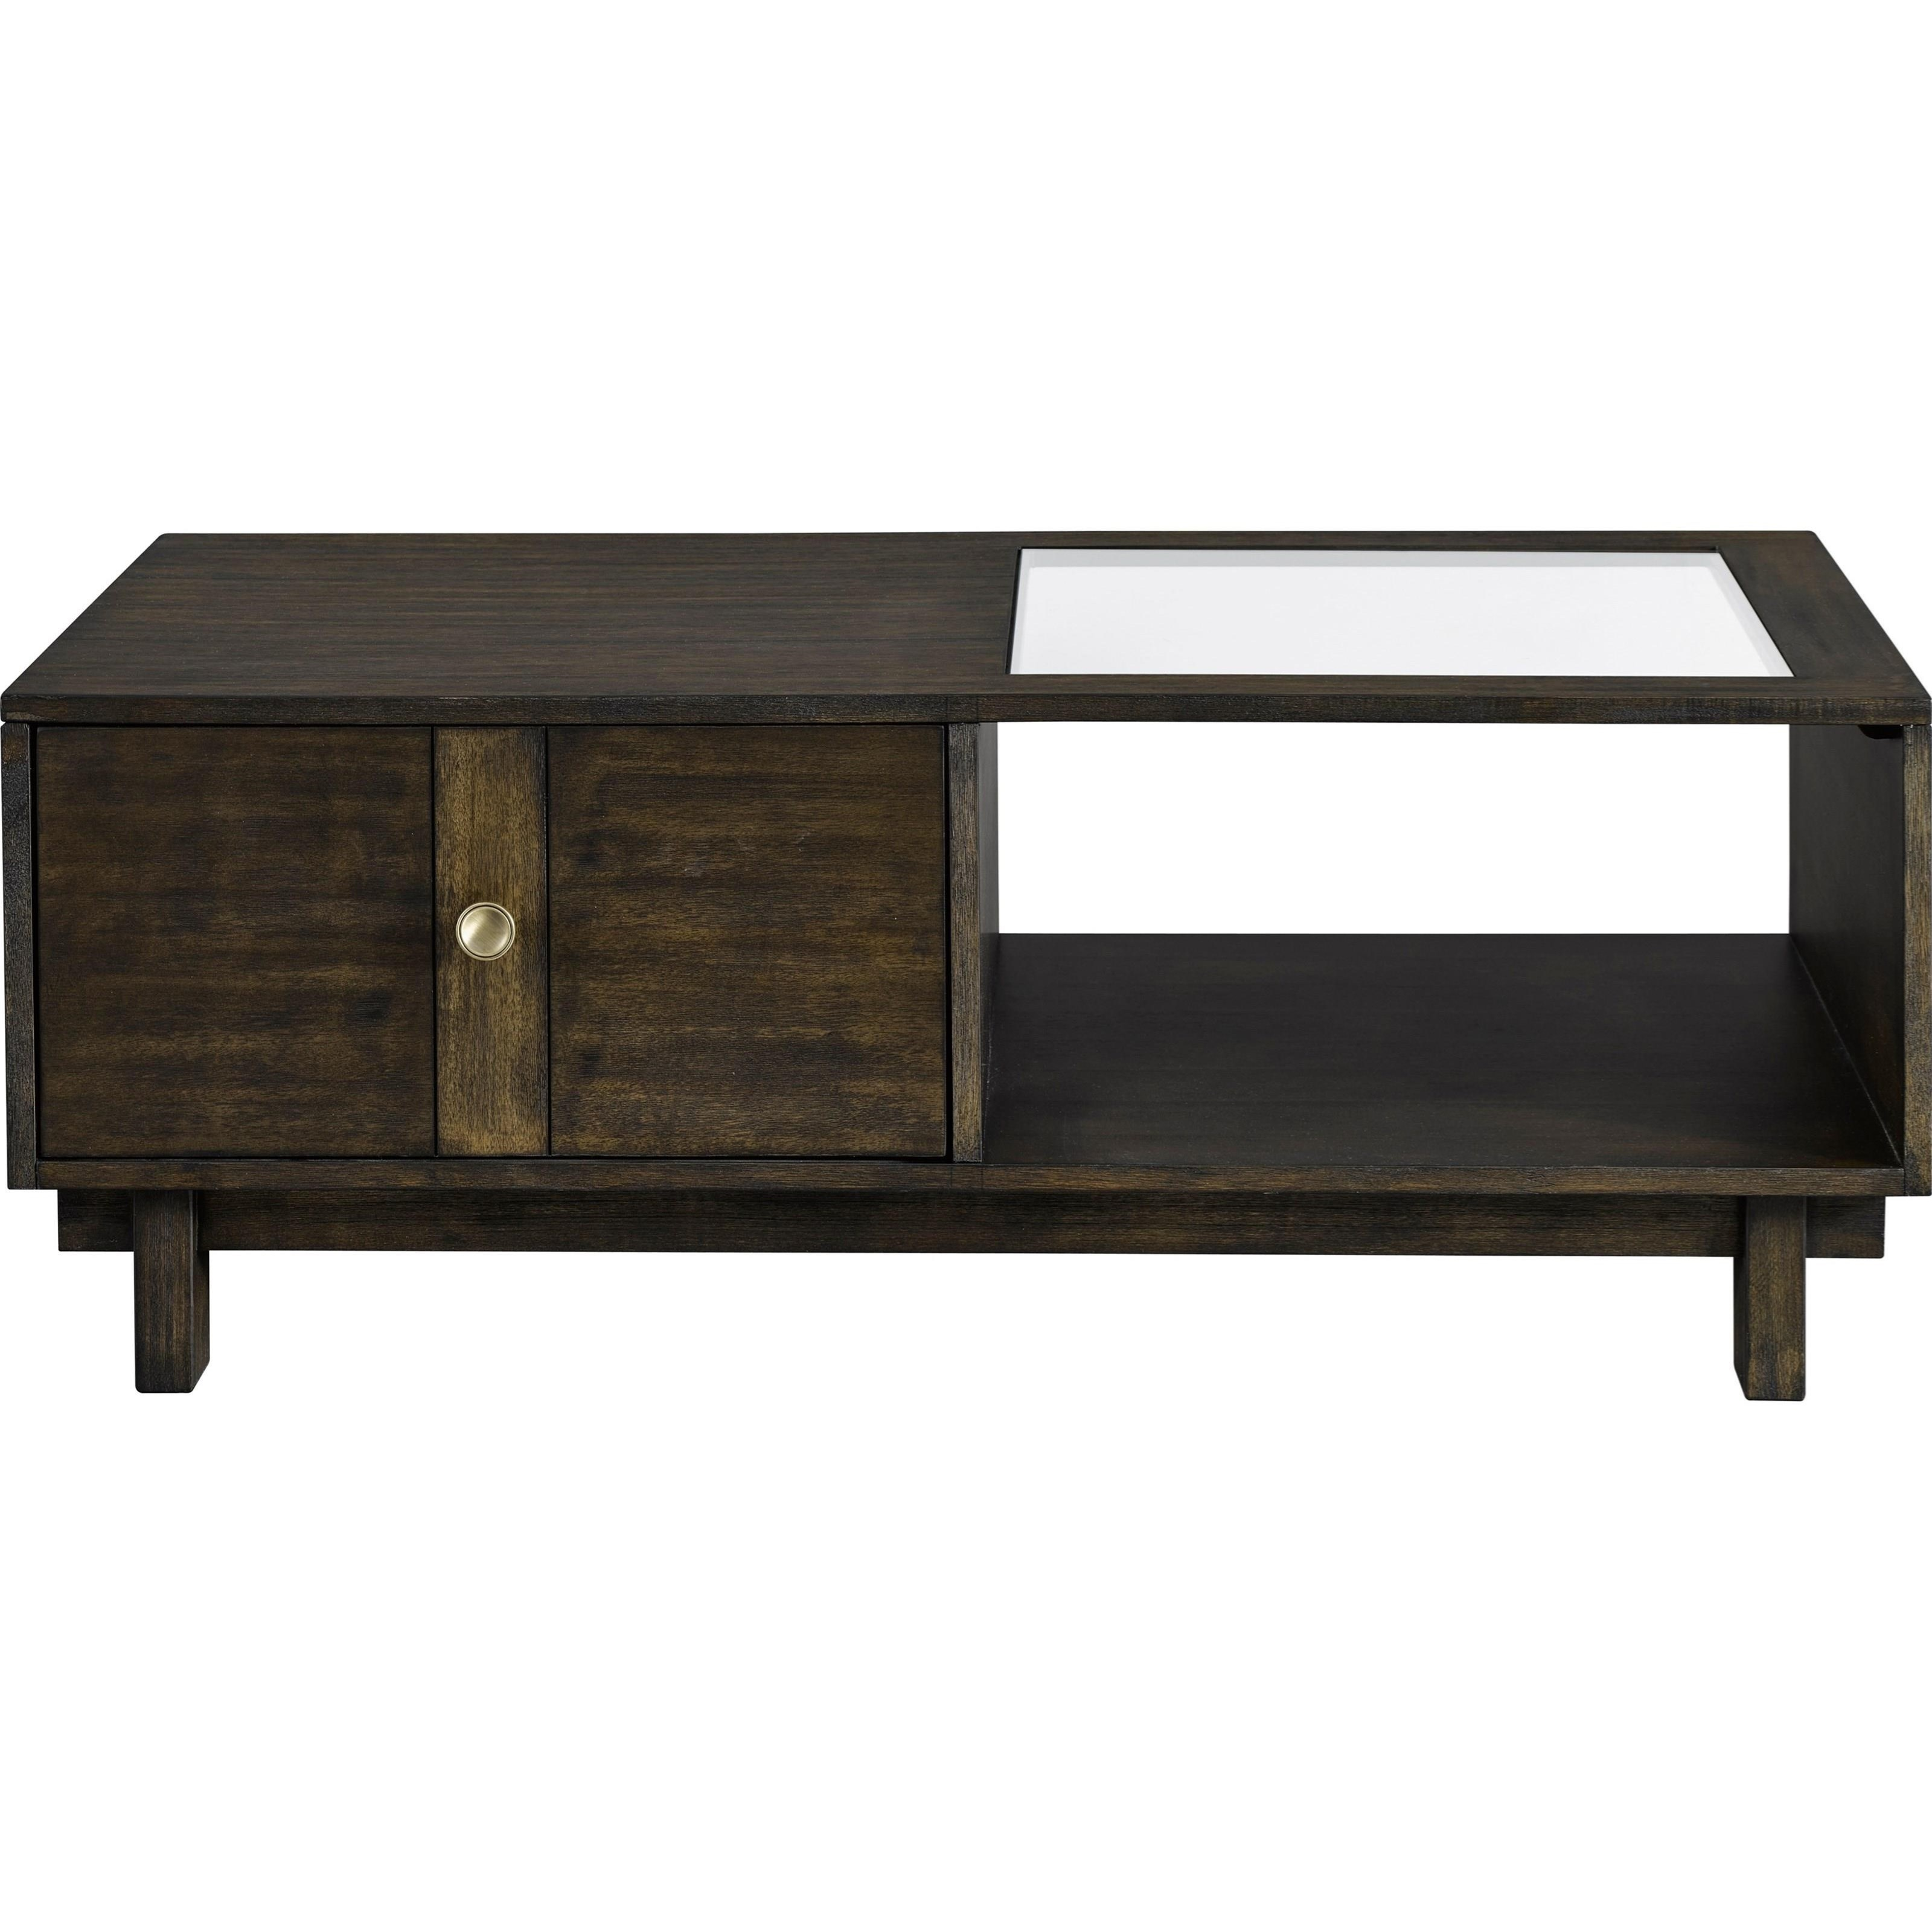 Broyhill Furniture Blythewood Contemporary Cocktail Table with